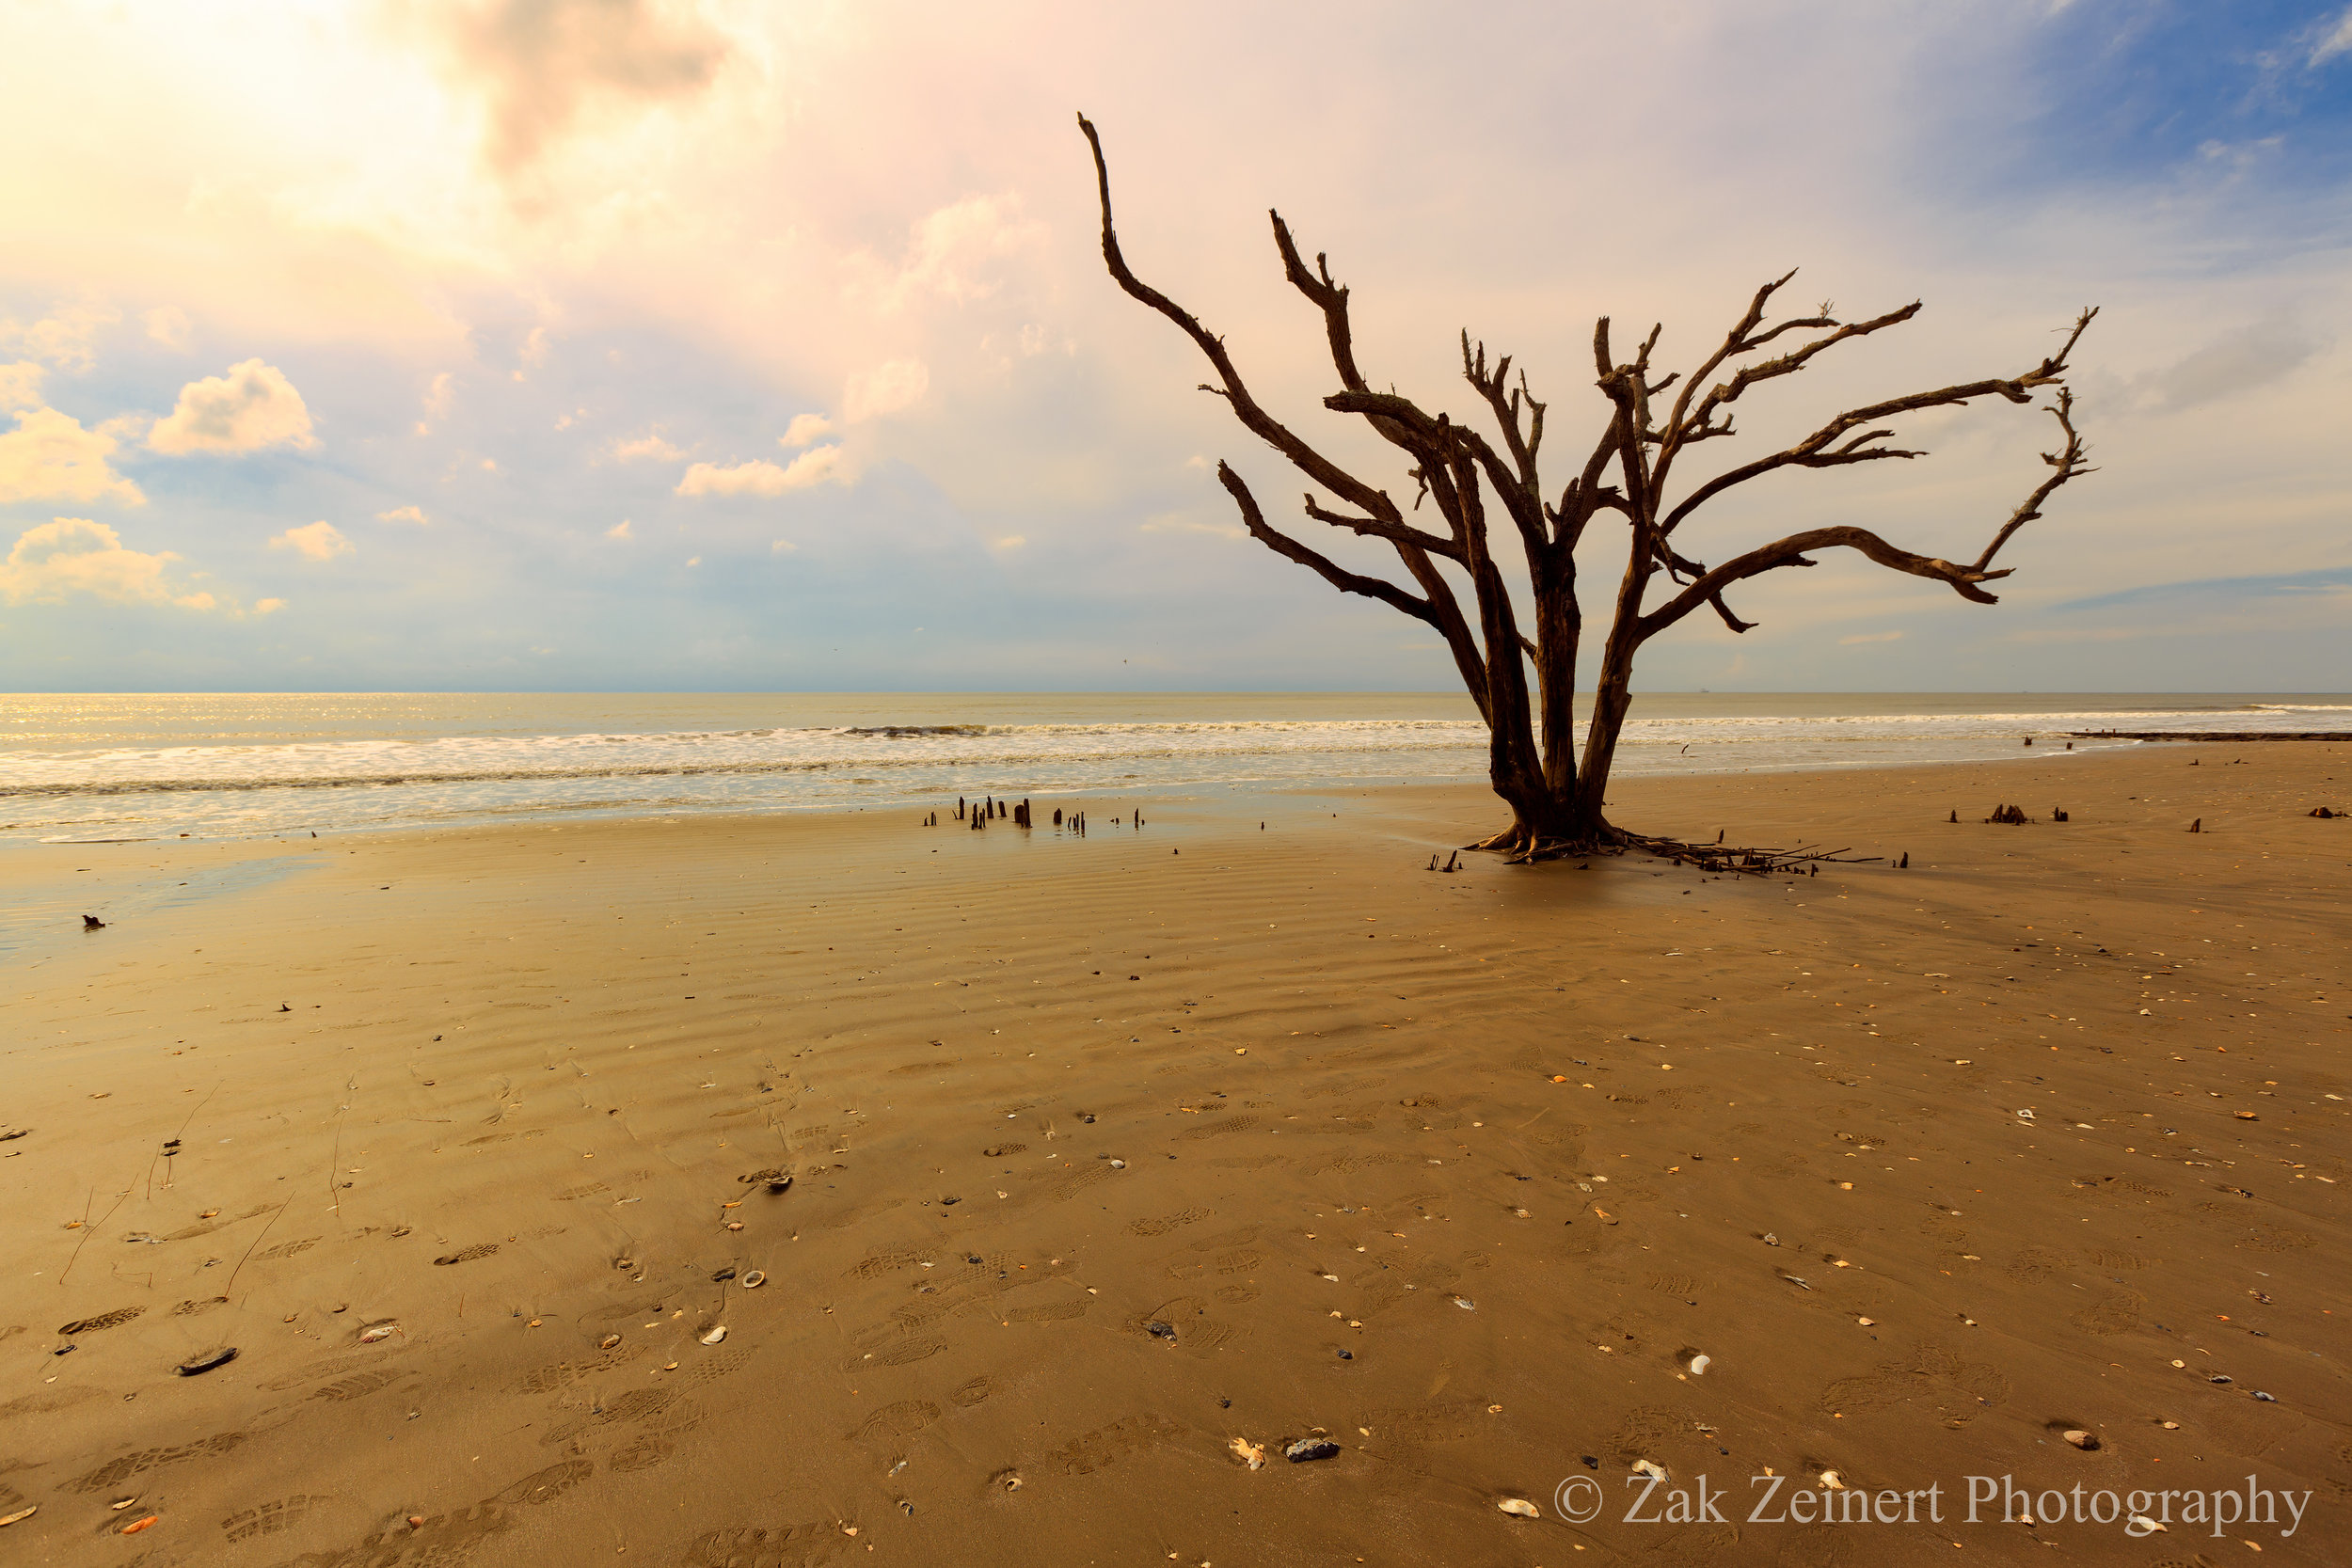 Botany Bay outside of Charleston. The beach is littered with seashells that crunch under your feet and desolate looking trees as far as the eye can see.